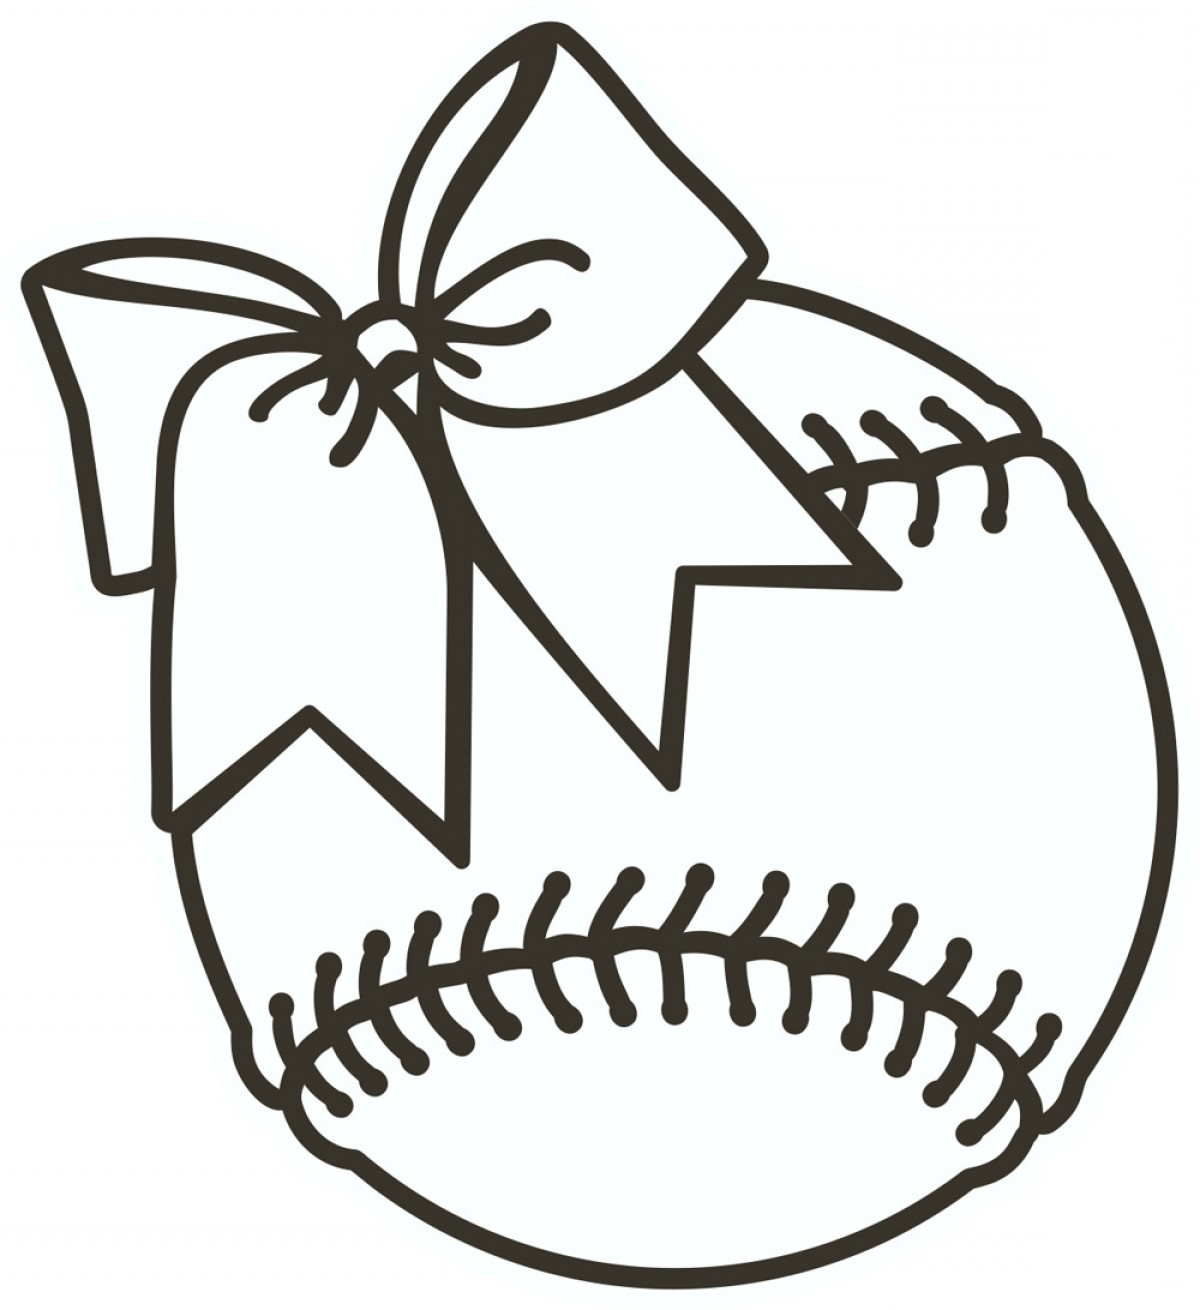 Softball Clipart Black And White Softball Clip Art.